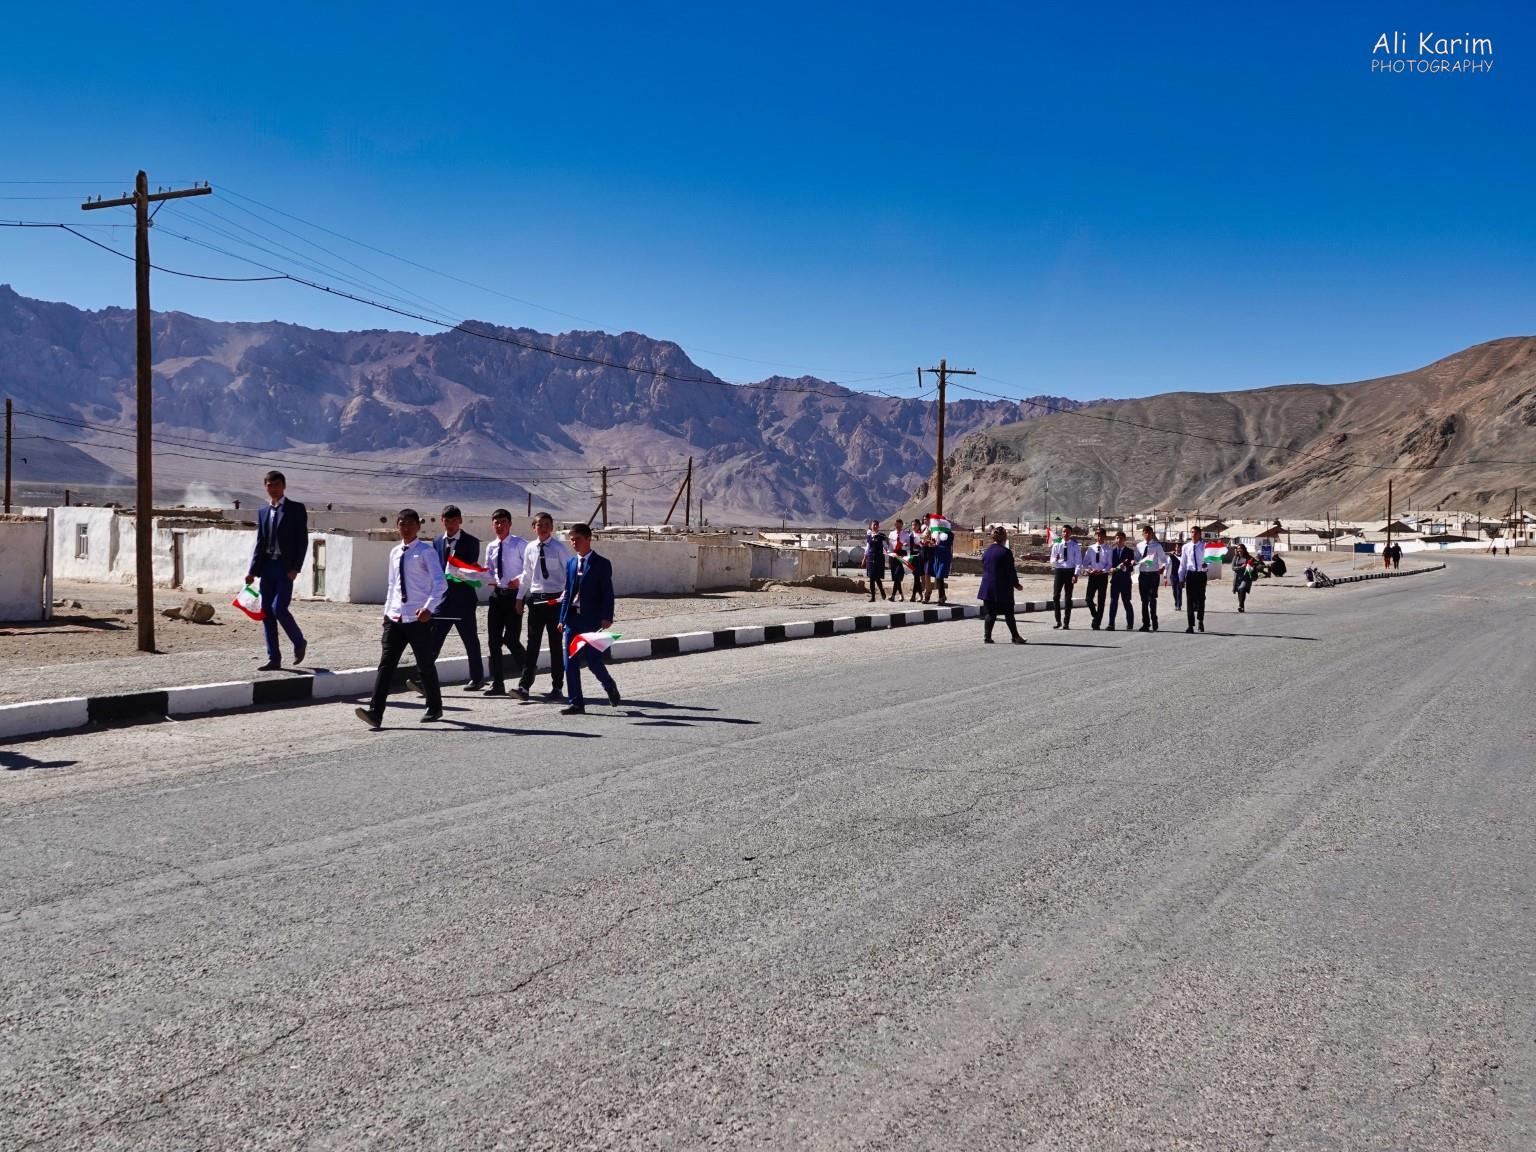 More Murghab & Alichur, Tajikistan, School kids out on a break; all in nice uniforms. Unfortunately, we did not have time to stop and talk to them